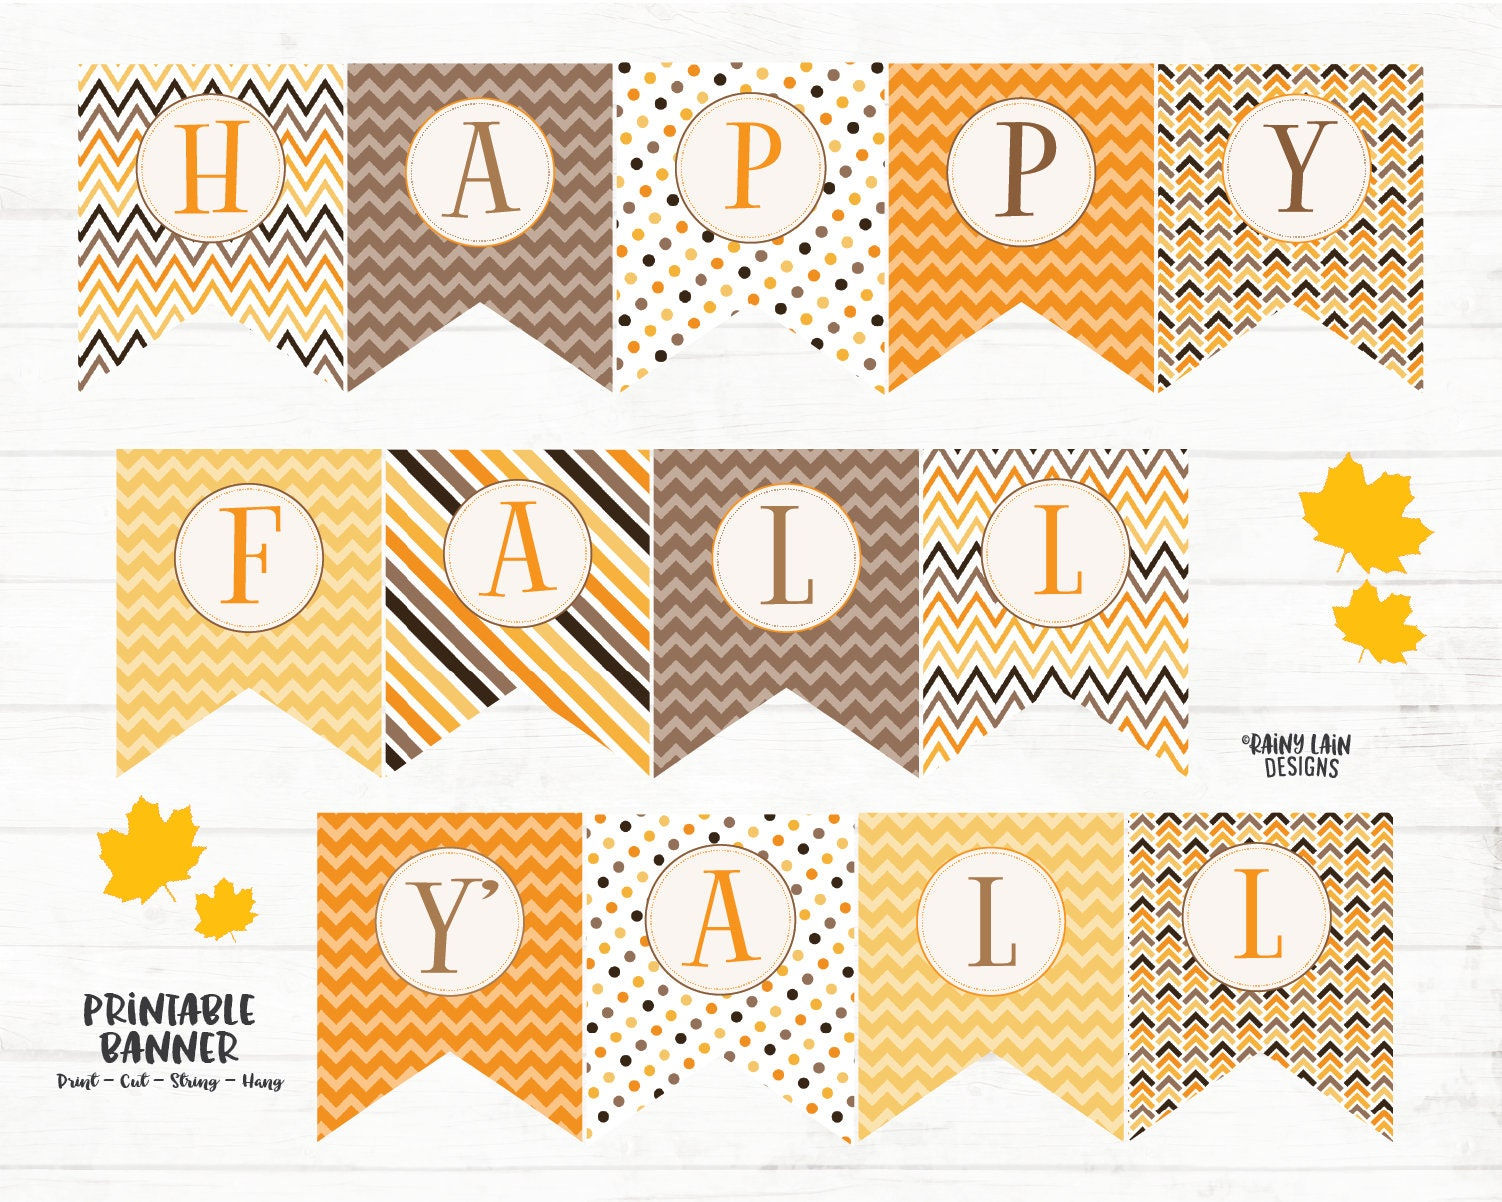 image about Happy Fall Yall Printable named Pleased Drop Yall Printable Banner, Drop Banner, Slide Indication, Content Slide Yall Banner, Slide Decorations, Printable, Polka Dots, Stripes, Chevron